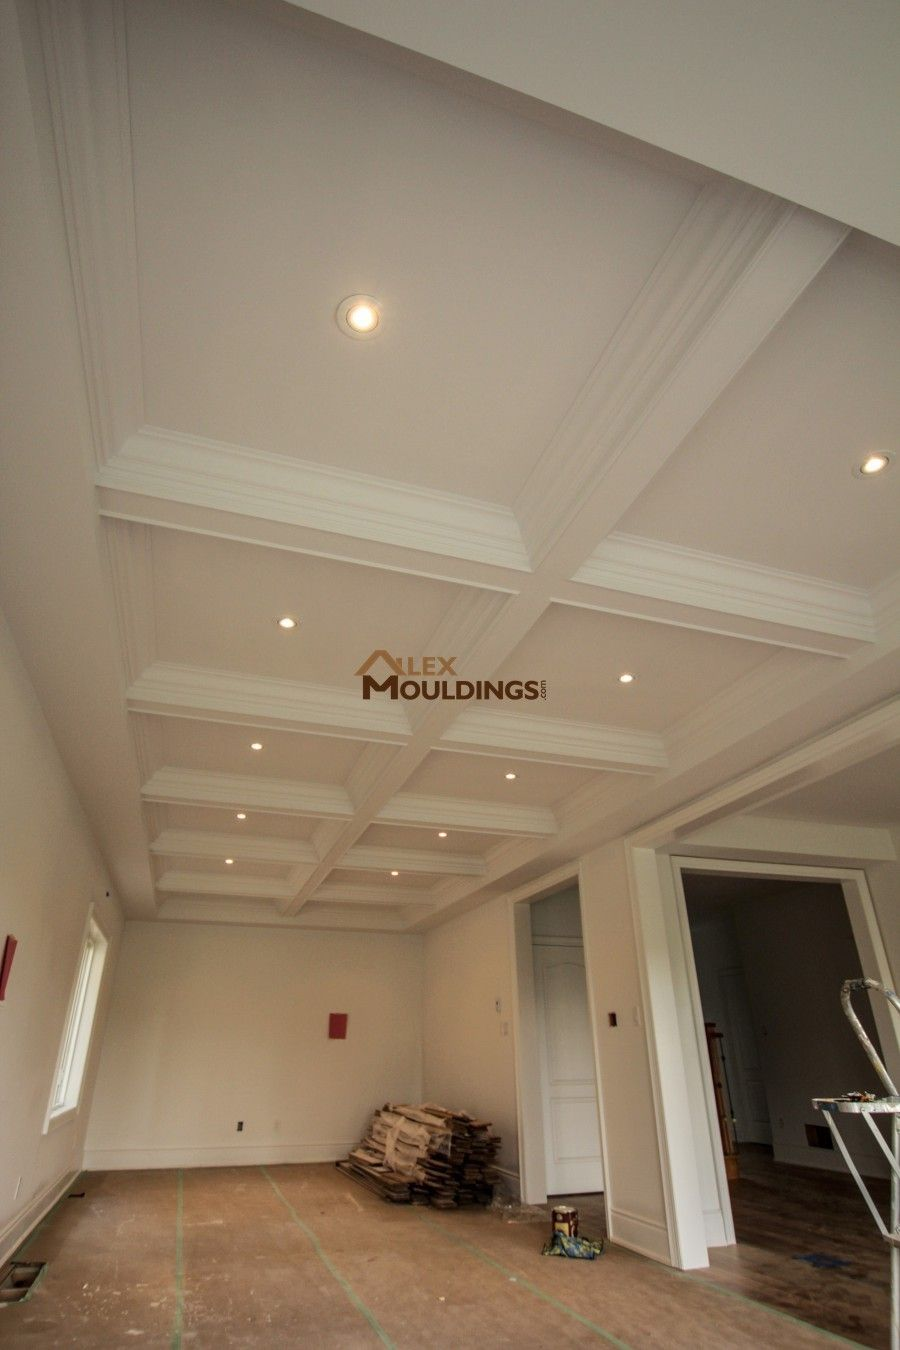 crown molding lighting. Ceiling Boxes With Crown Mouldings And Lights Molding Lighting M